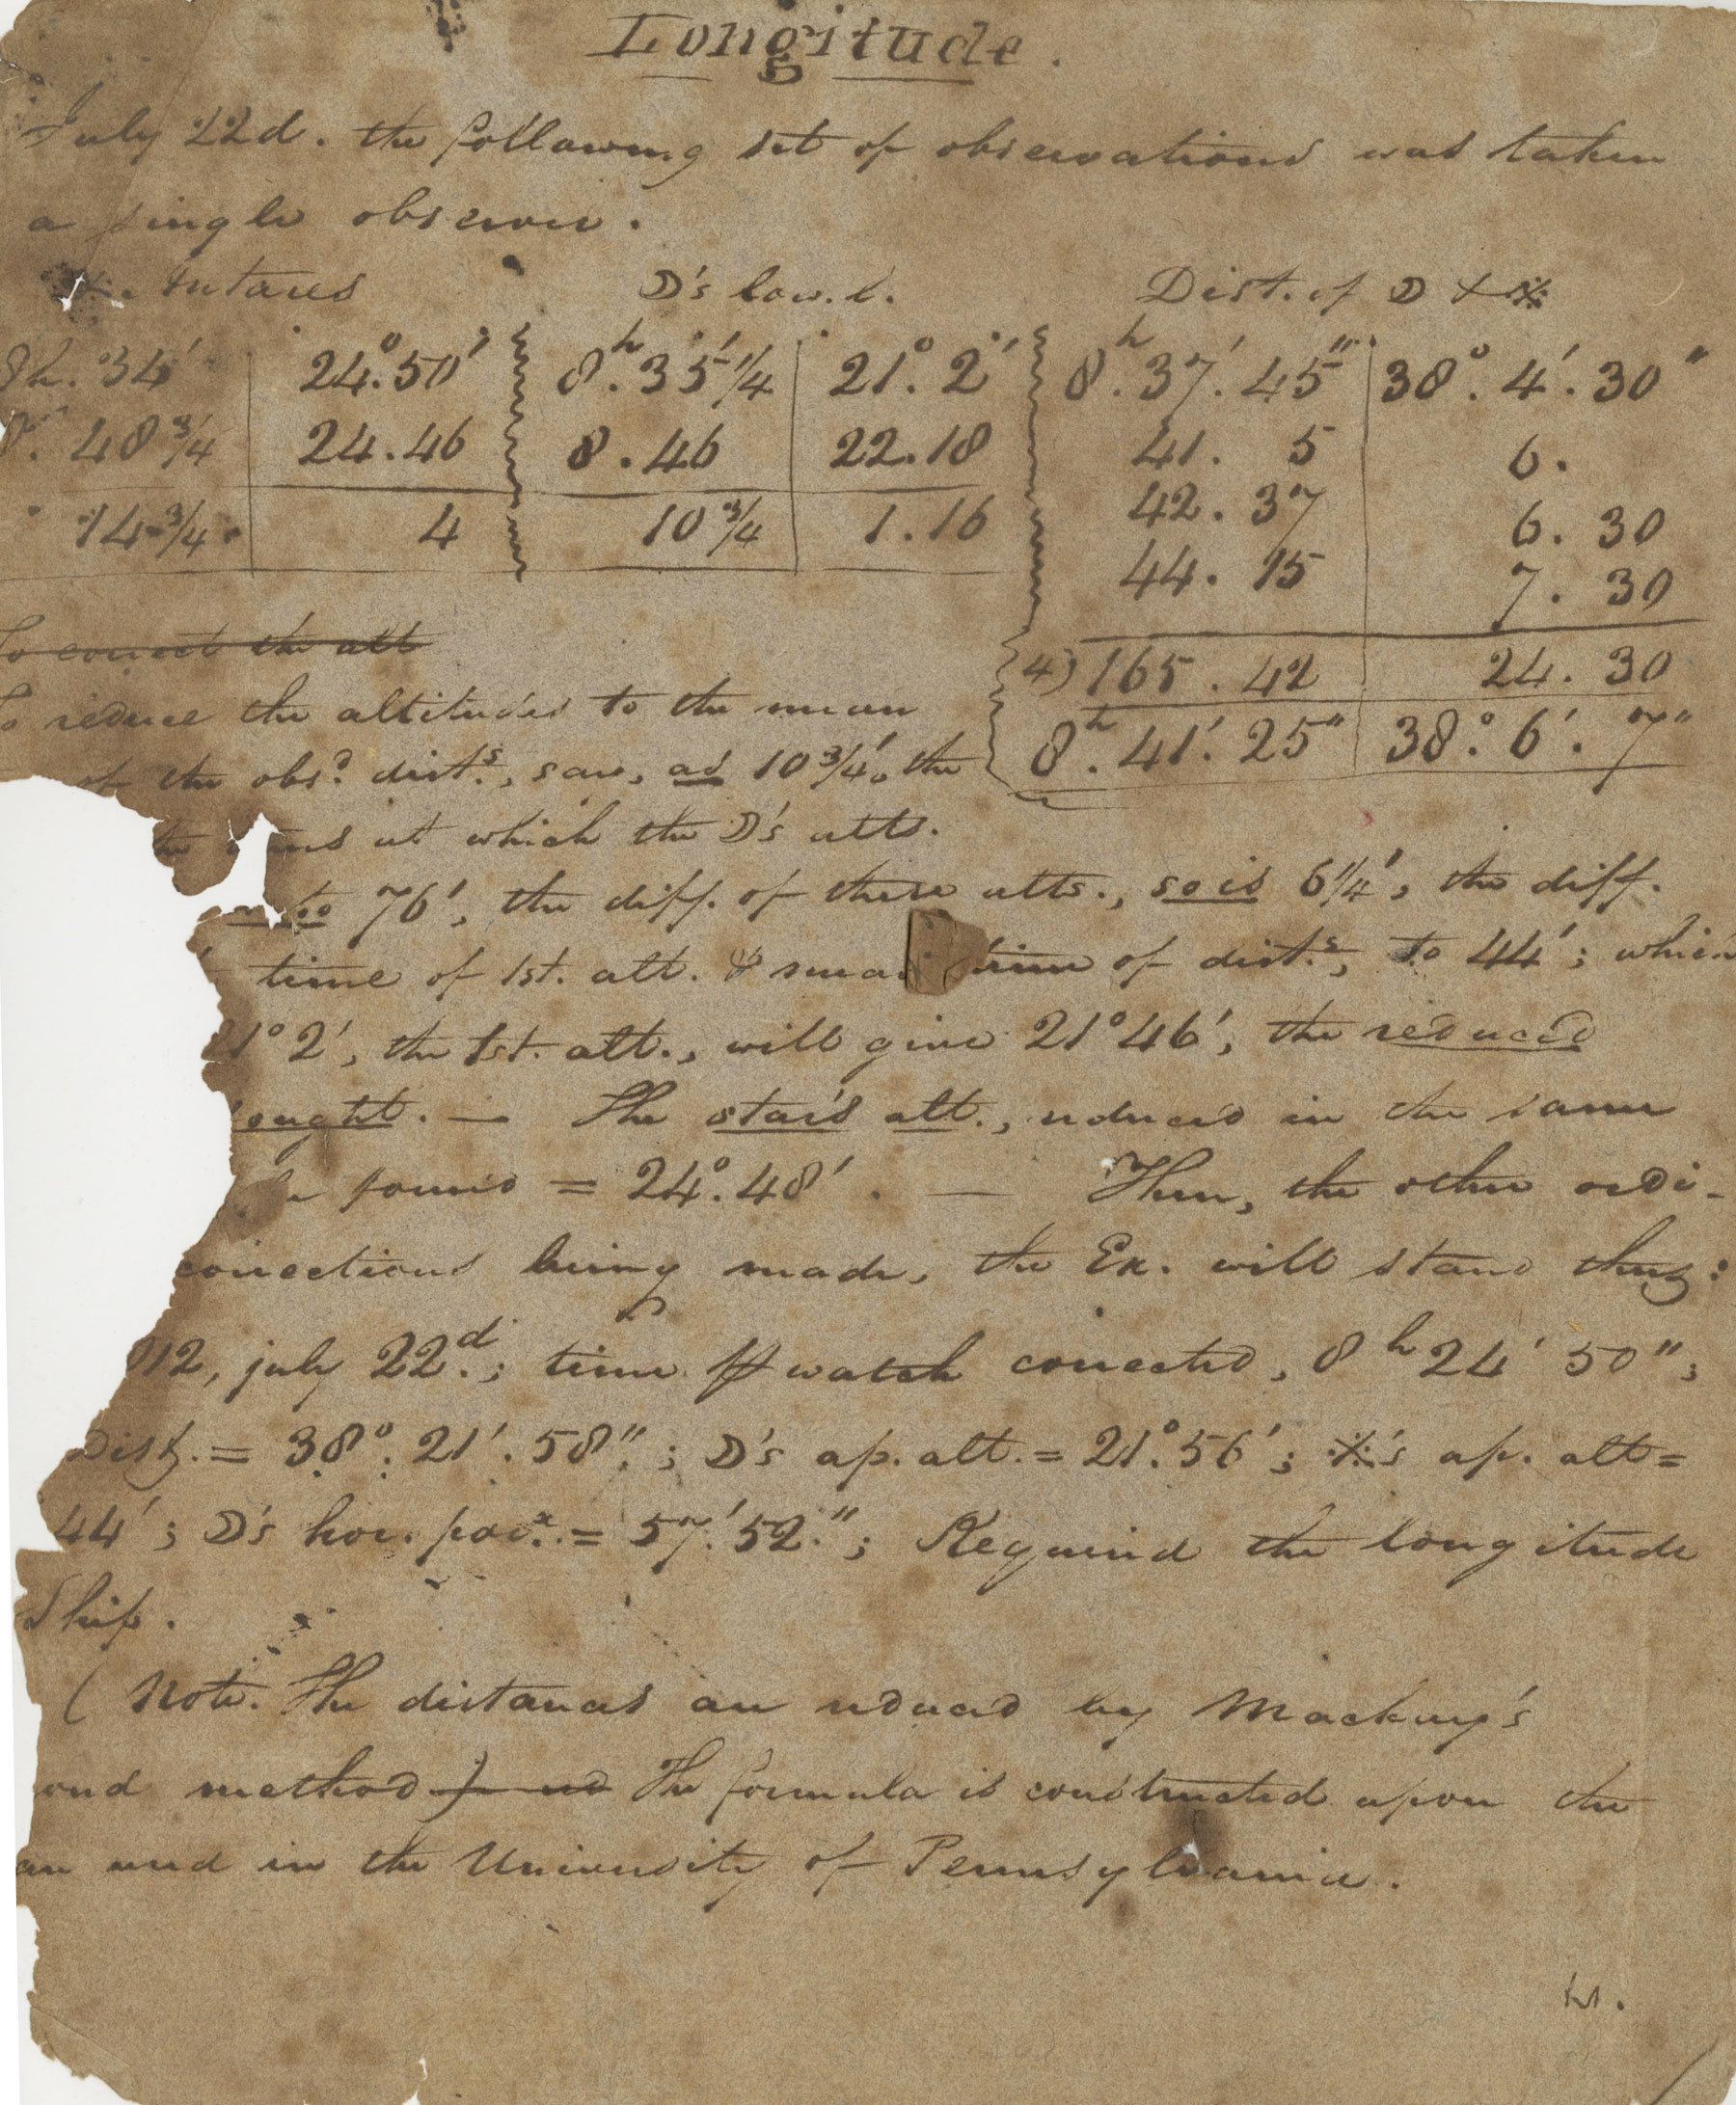 Robert M. Patterson's Manuscript of Observations and Calculations Relating to Time, Longitude and Latitude